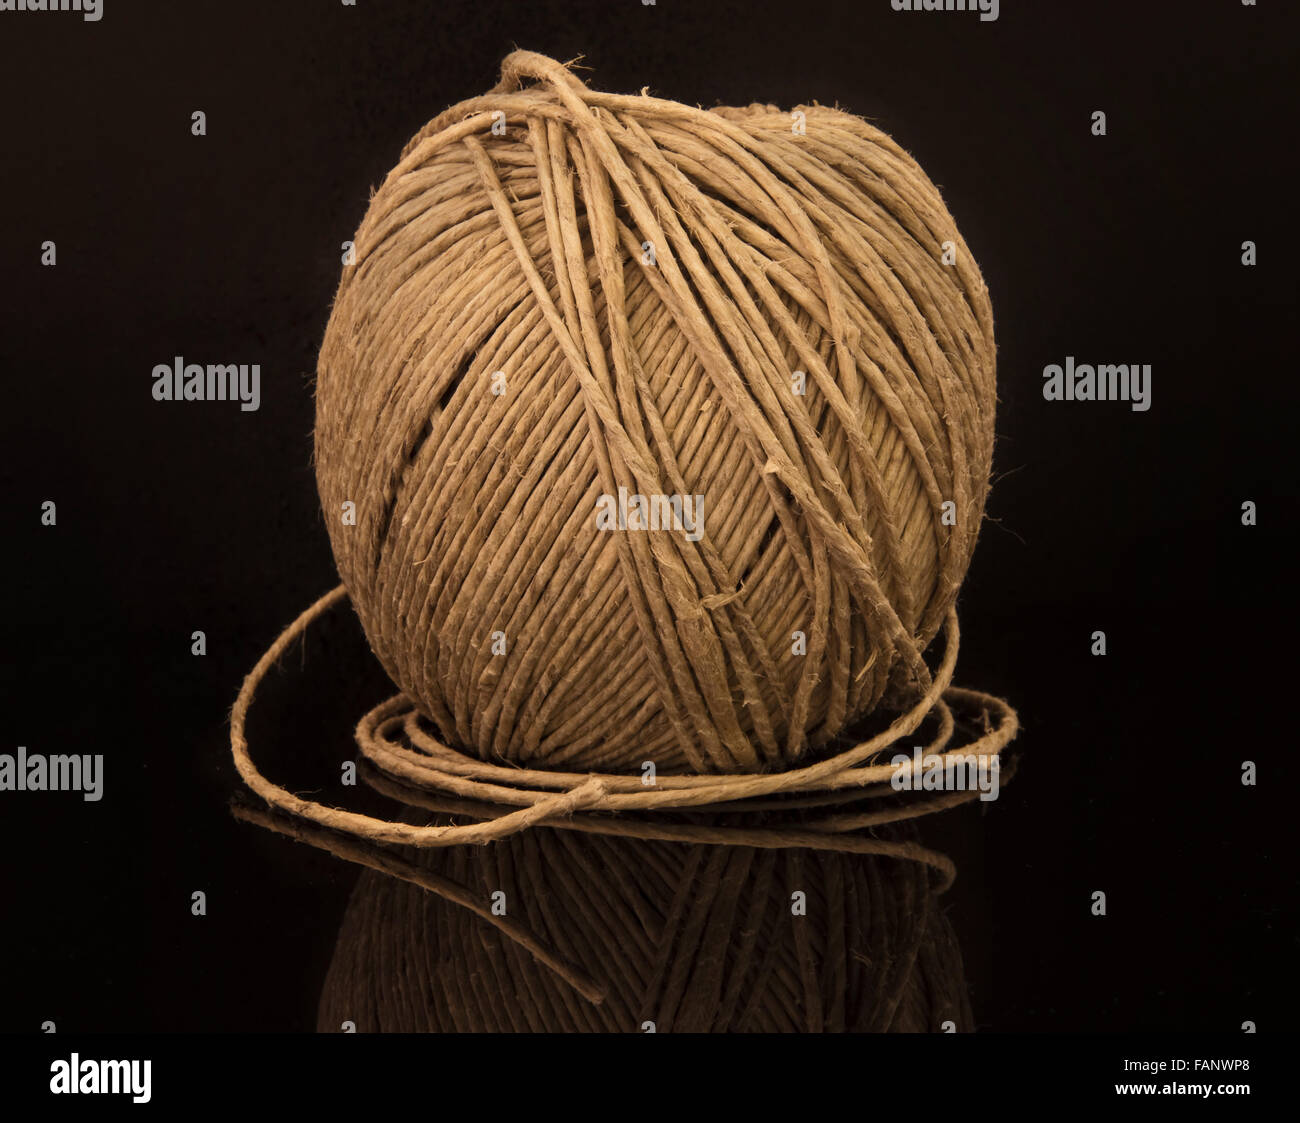 Ball of String on Black - Stock Image